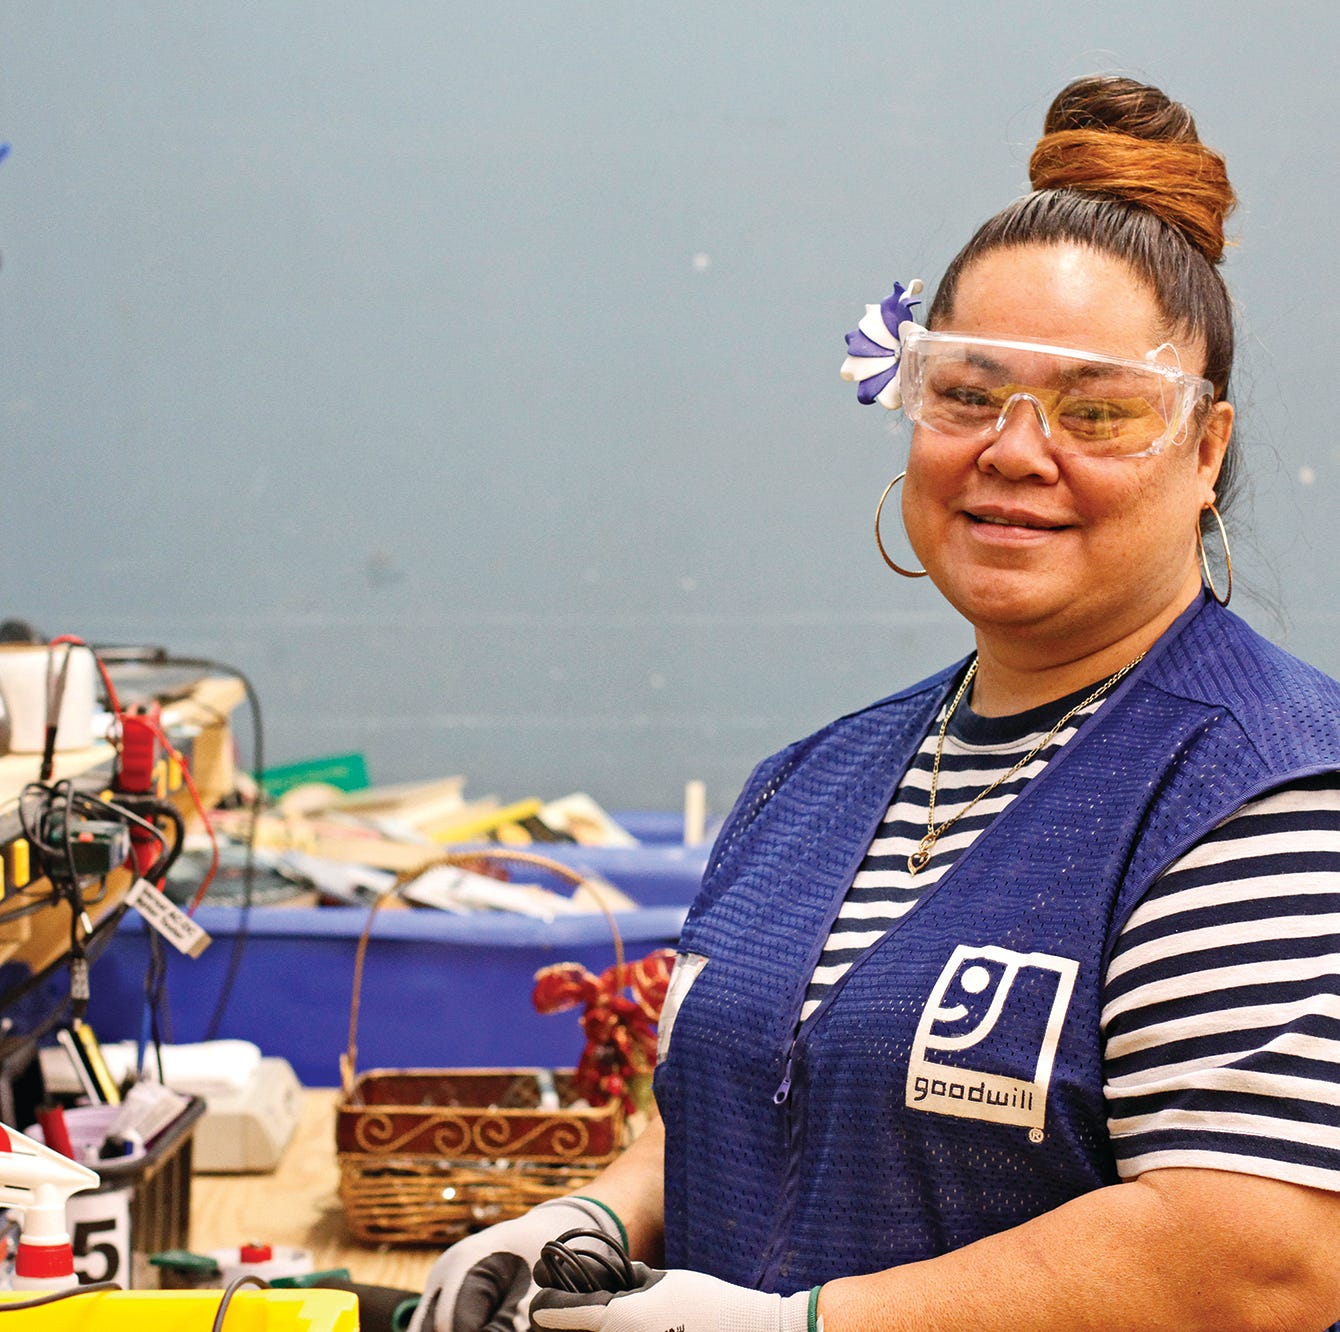 Native of American Samoa finds new future with Goodwill in Clarksville